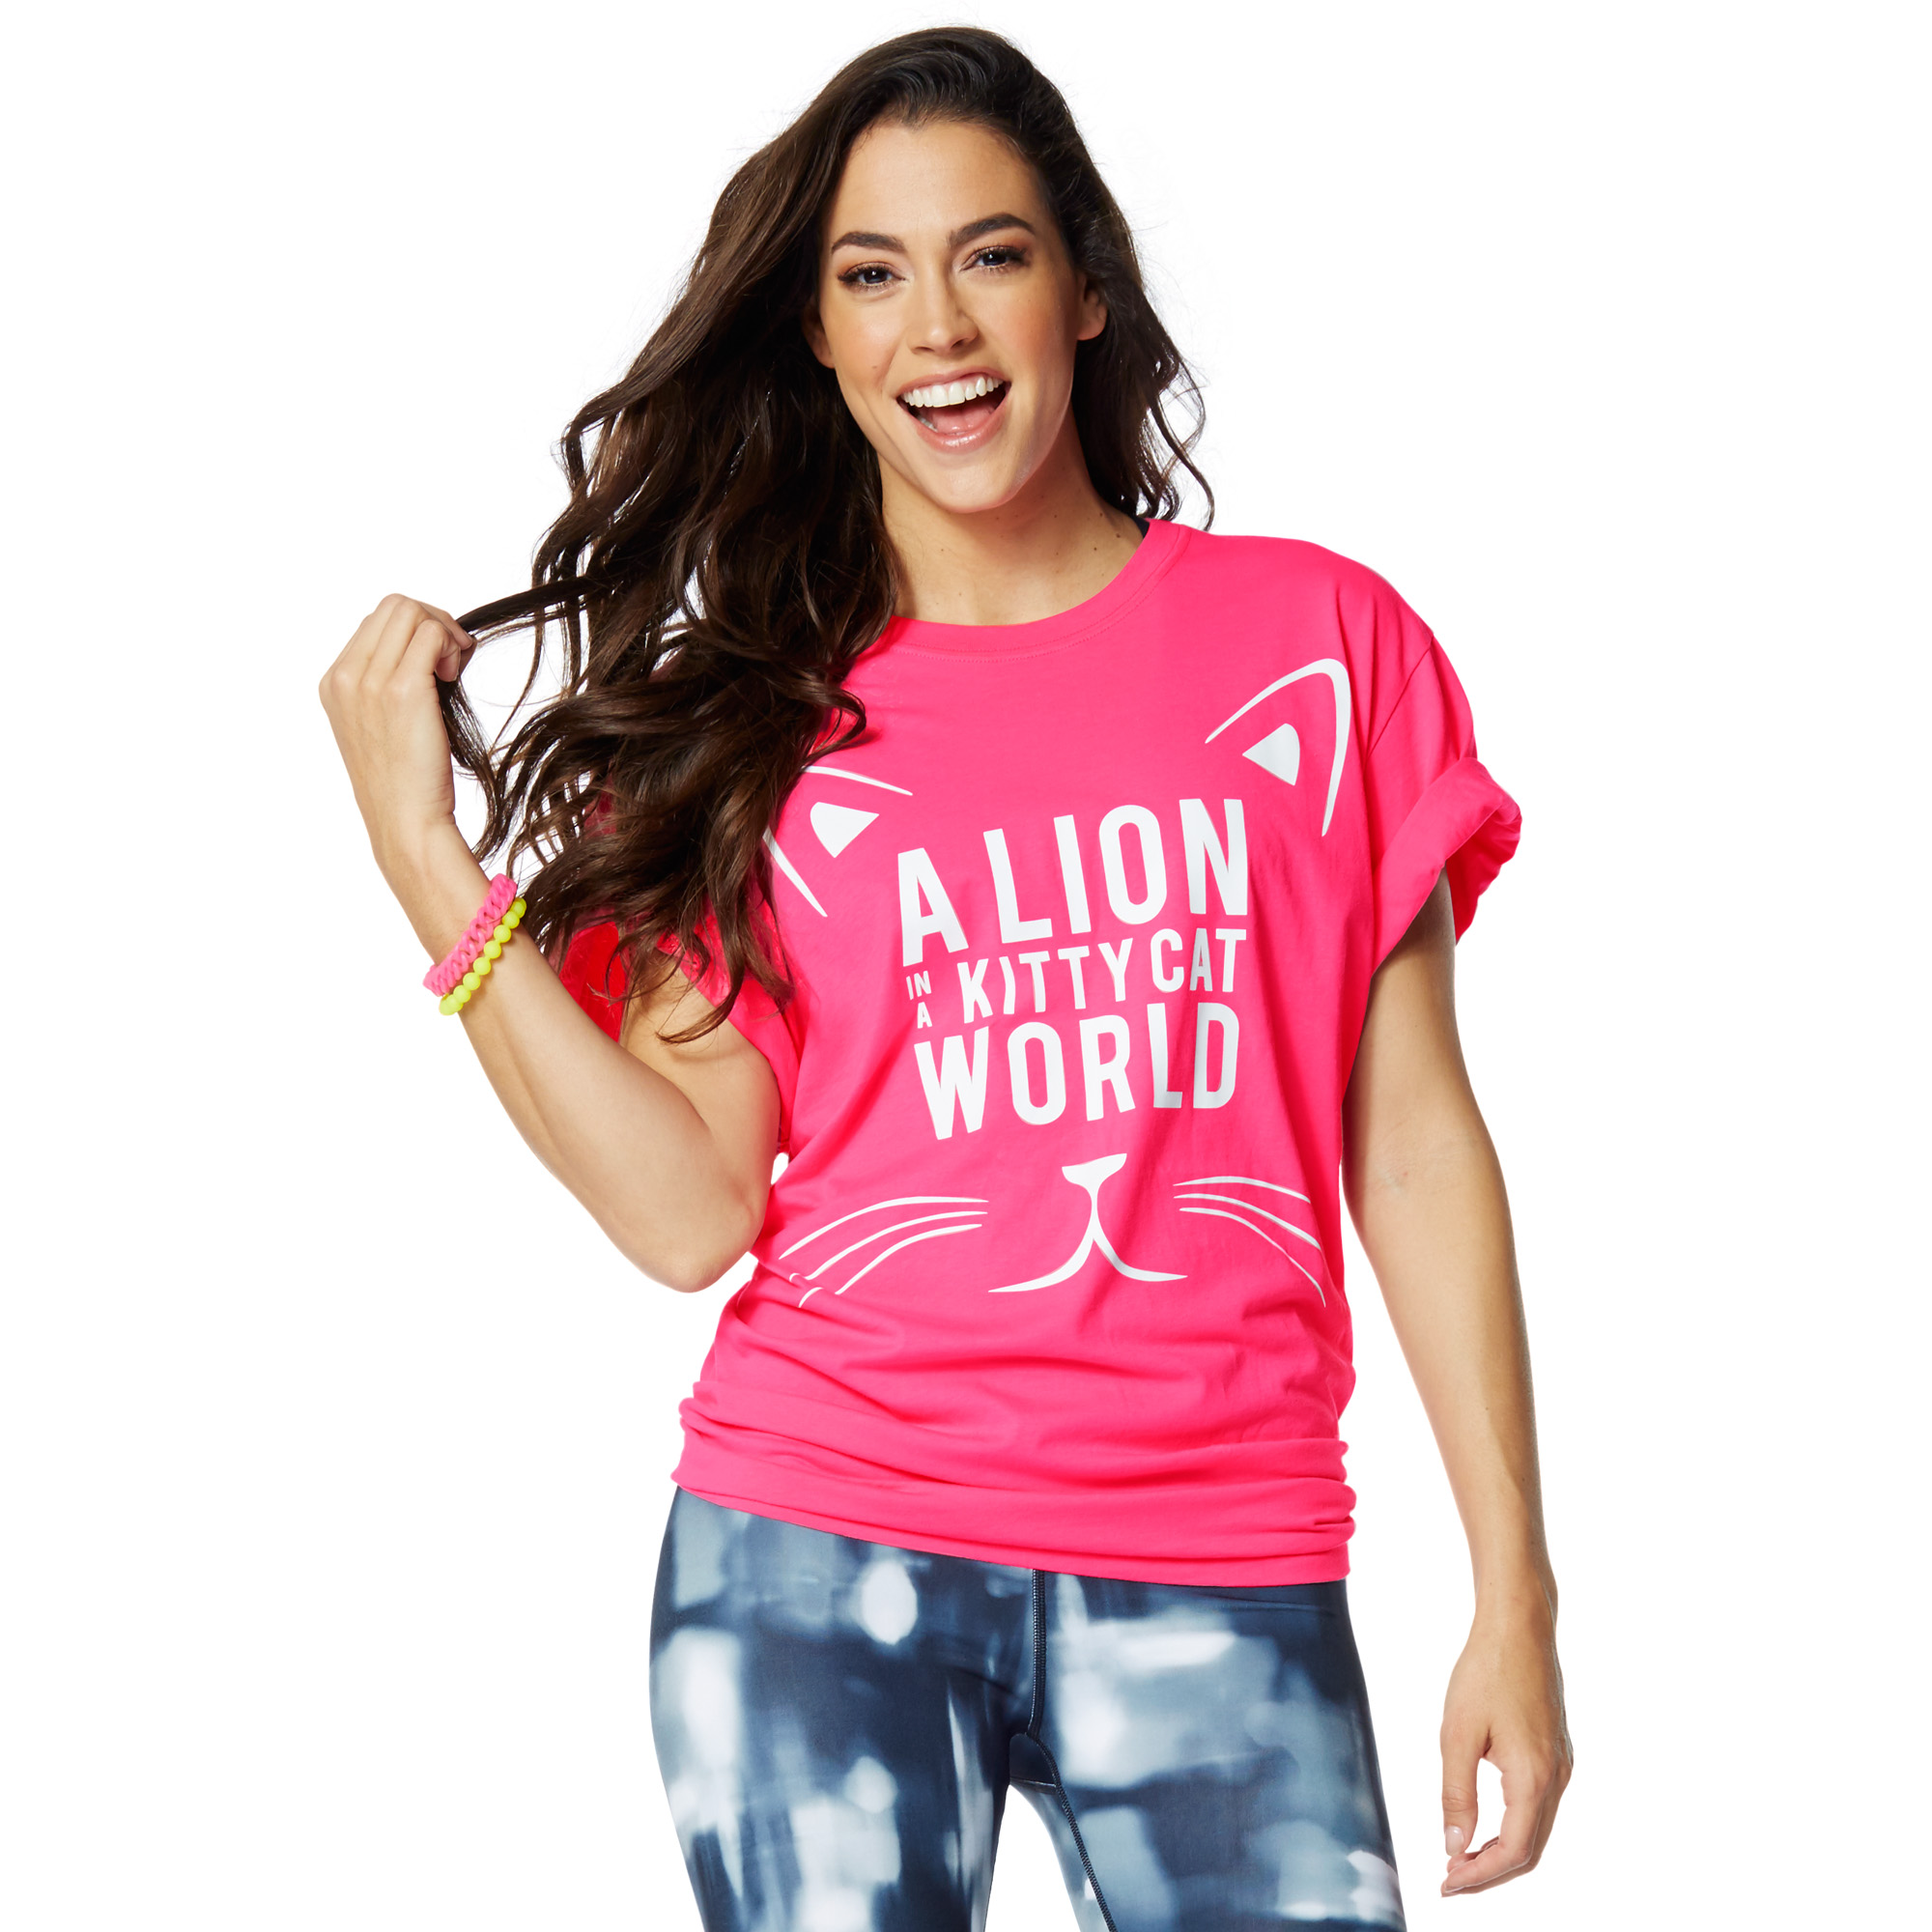 zumba lion in a kitty cat world tee zumba shop seazumba. Black Bedroom Furniture Sets. Home Design Ideas